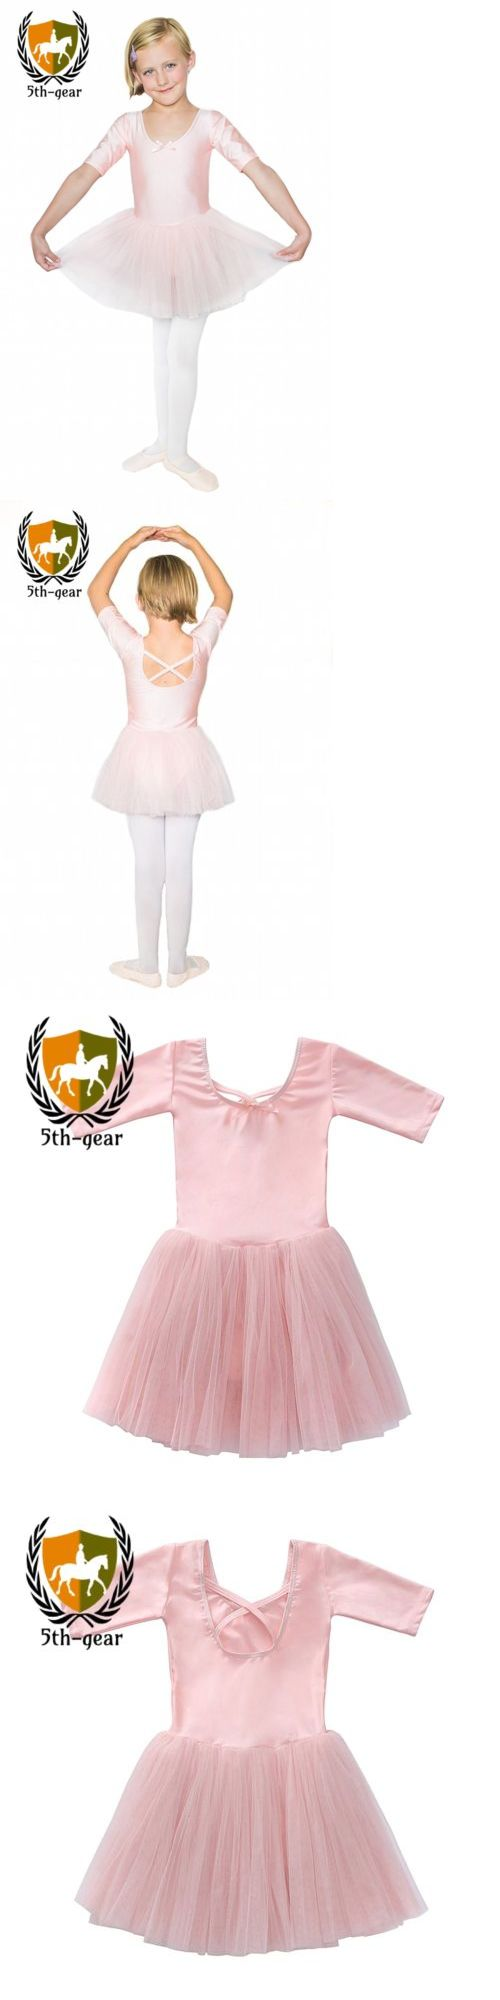 Dancewear: Stelle Toddler Girls Cute Tutu Dress Leotard For Dance, Gymnastics And Ballet -> BUY IT NOW ONLY: $32.35 on eBay!